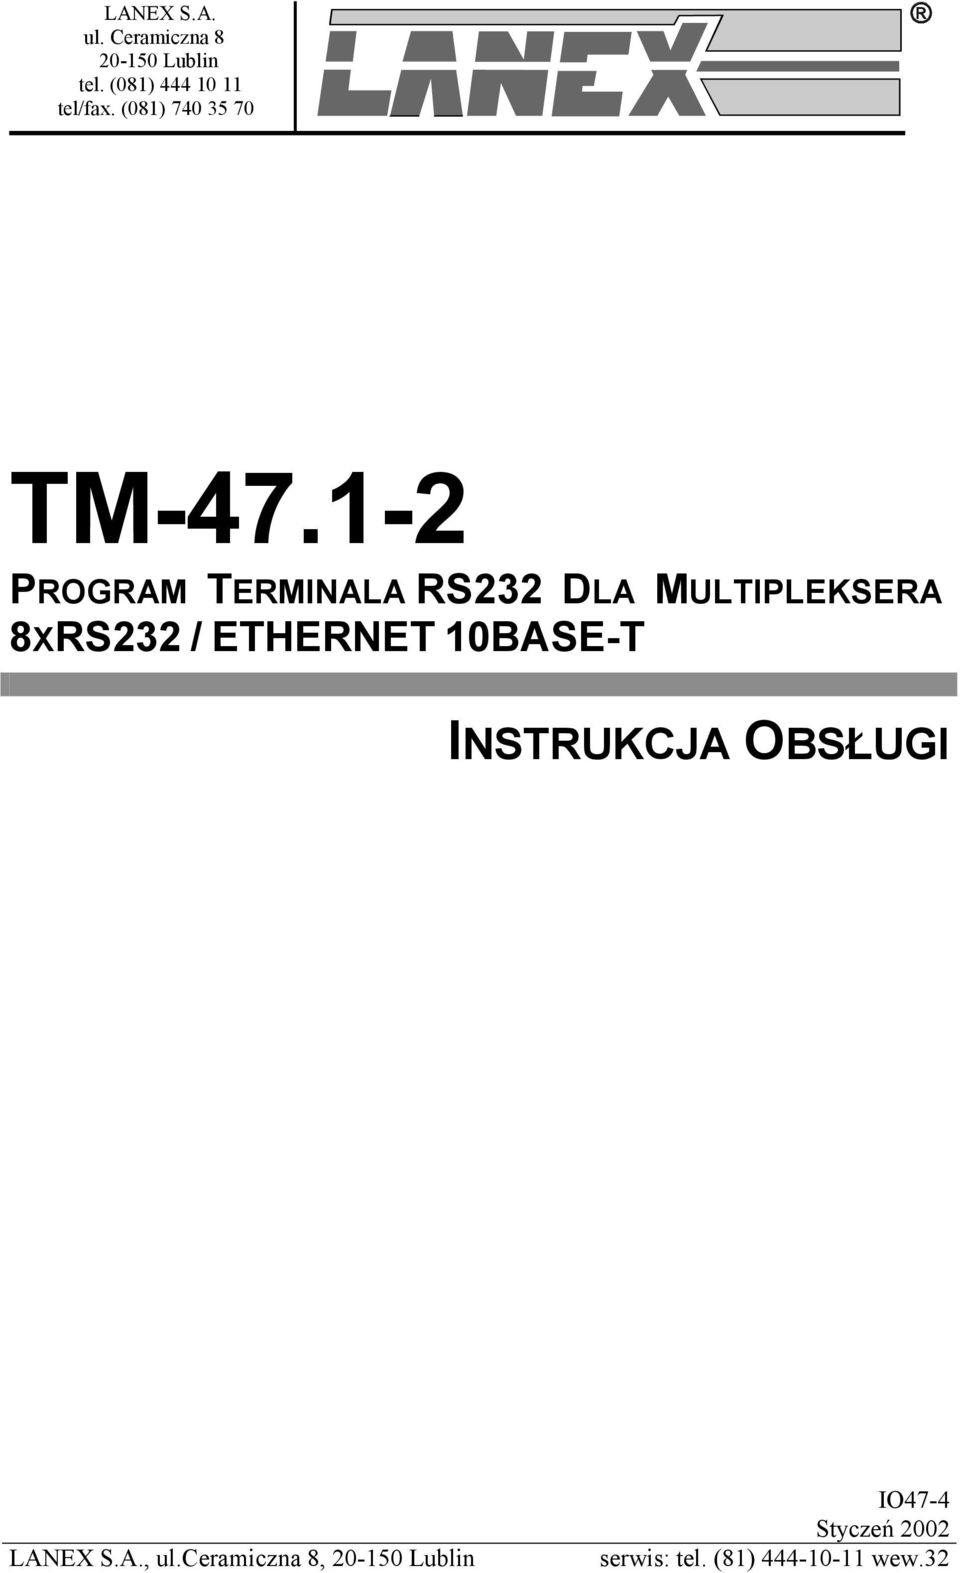 1-2 PROGRAM TERMINALA RS232 DLA MULTIPLEKSERA 8XRS232 / ETHERNET